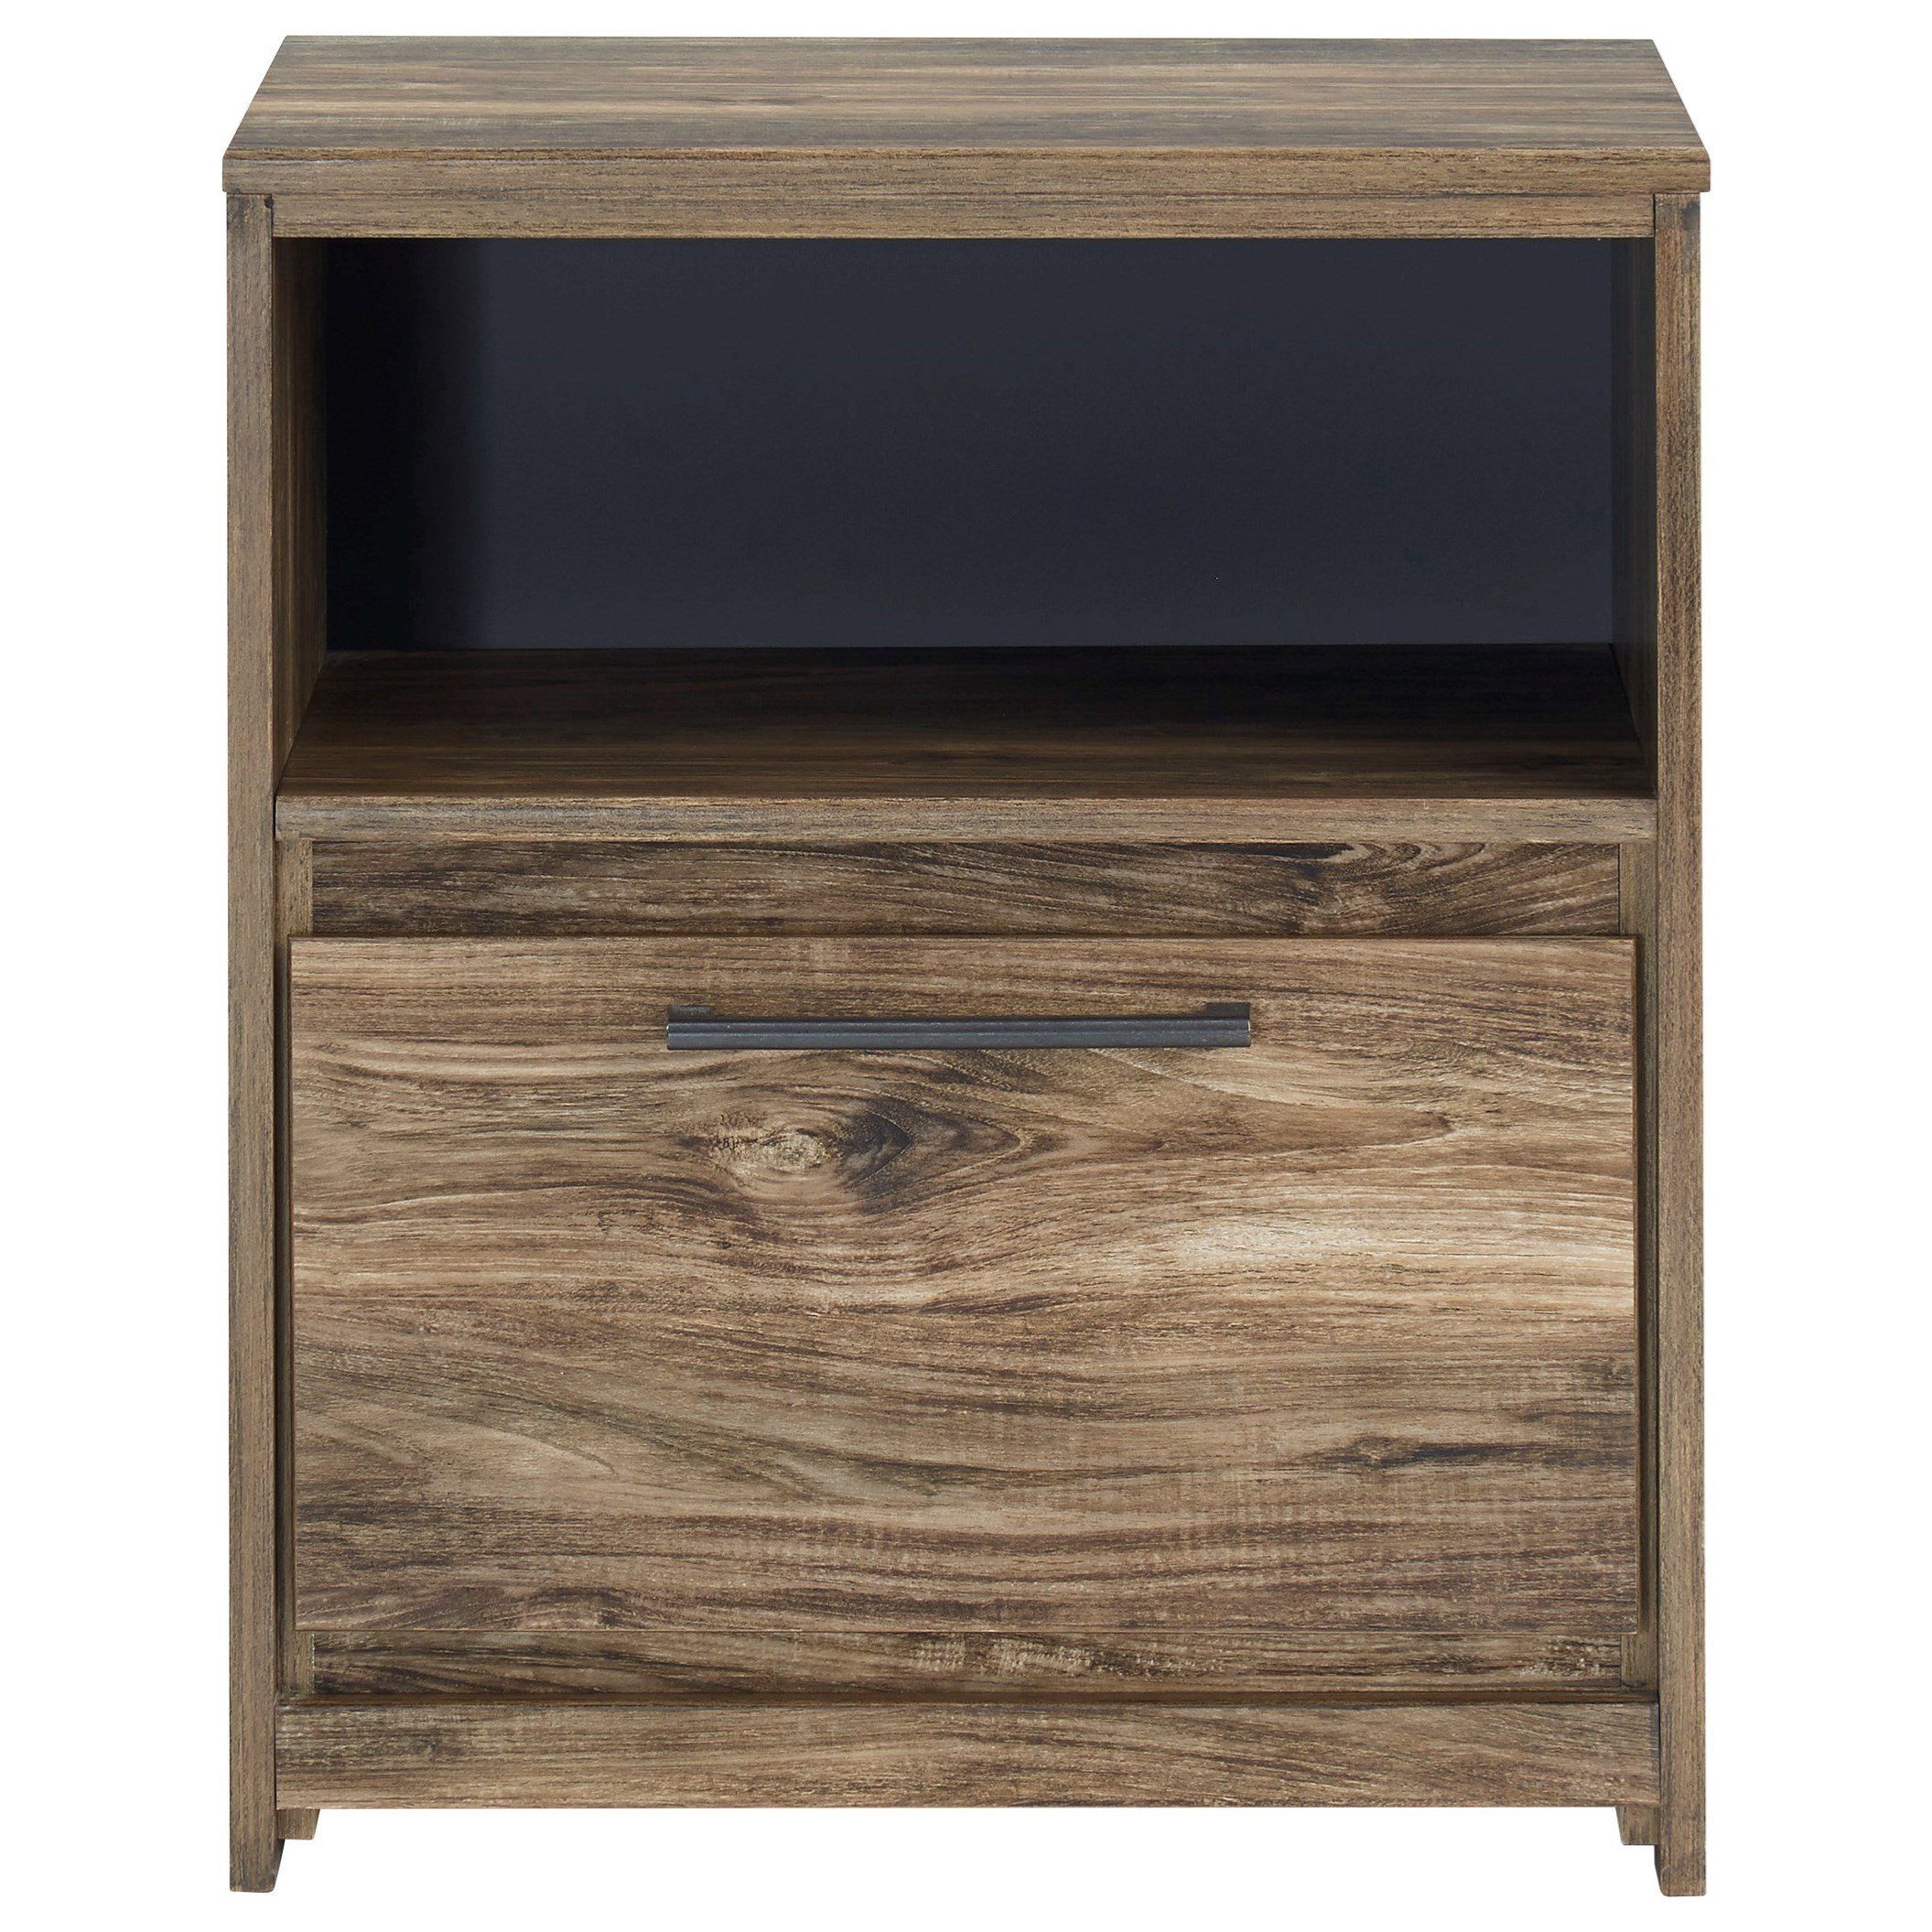 Rusthaven 1-Drawer Nightstand by Signature Design by Ashley at Miller Waldrop Furniture and Decor